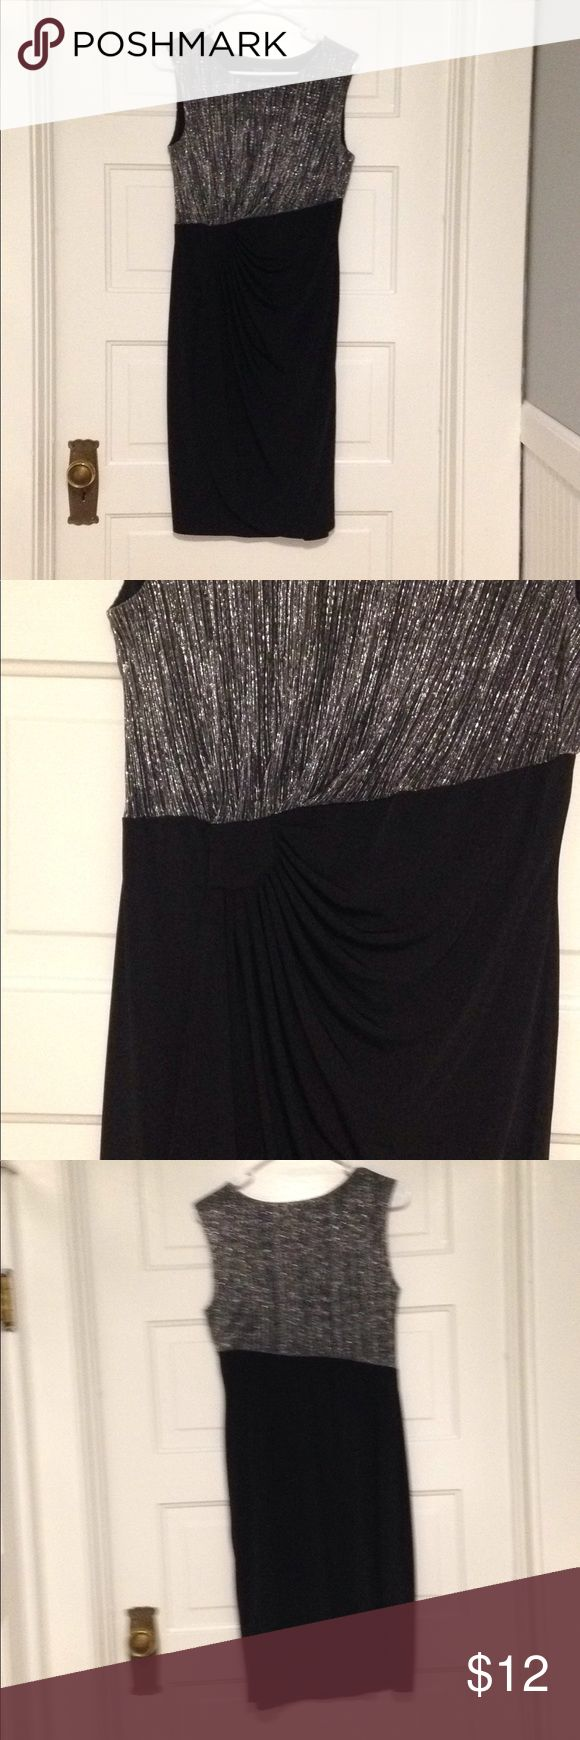 Dress Cute little dress that might be fun for a holiday party. Silver and a little gold for upper body   At waist, is a little gather that kind of looks like a sunburst  95%polyester 10%spandex made by enfocus petite size 10 petite enfocus petite Dresses Asymmetrical